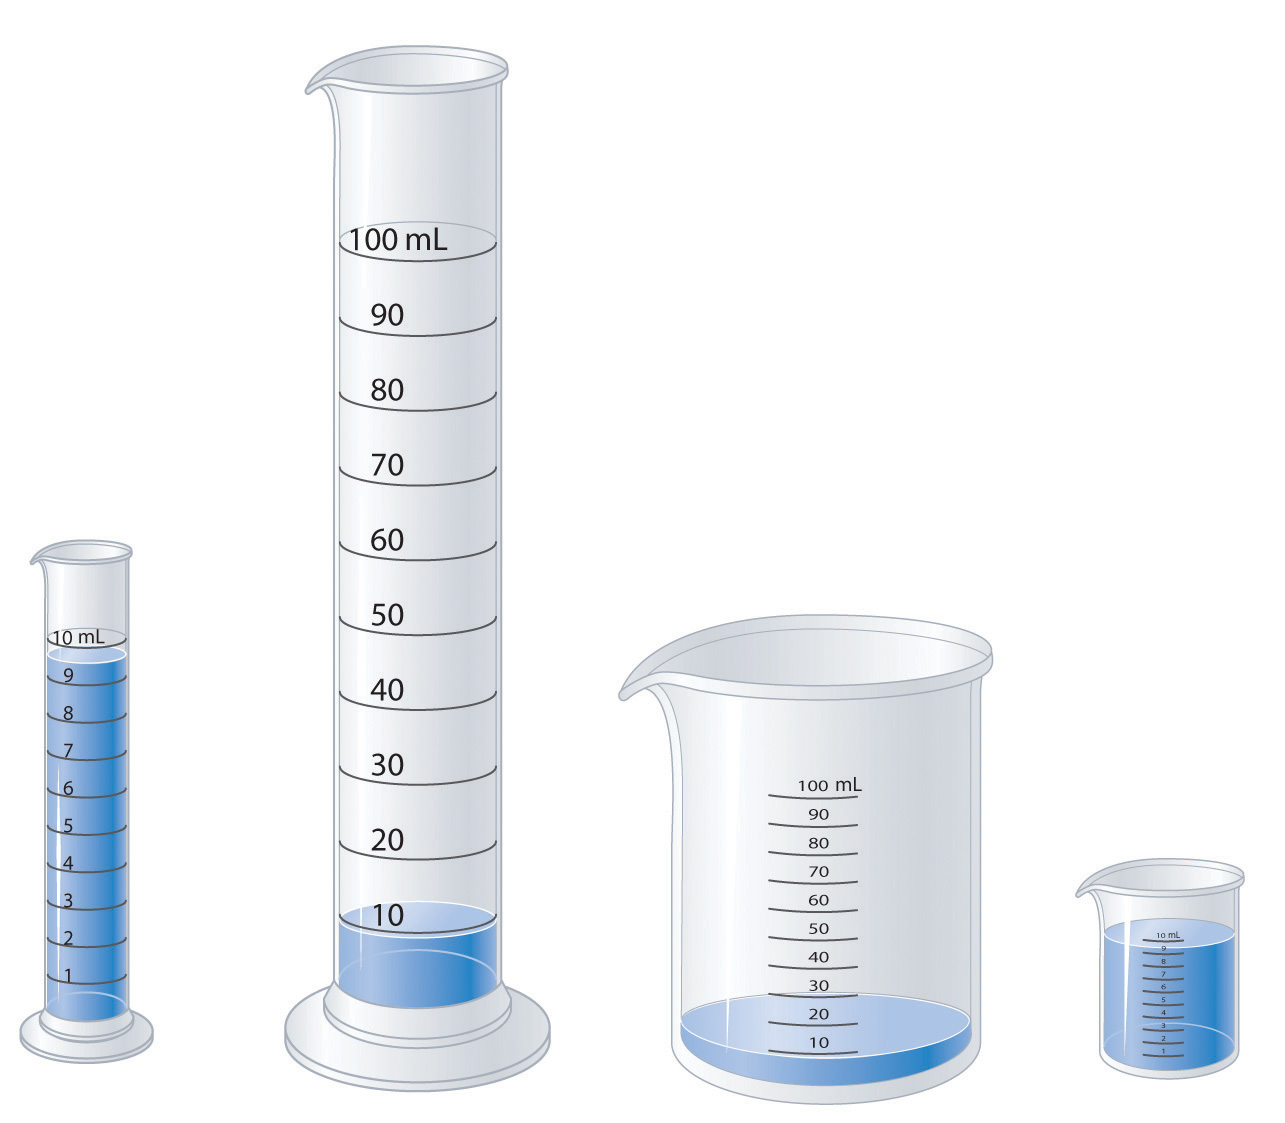 Volume Measuring Instruments : Introduction to chemistry